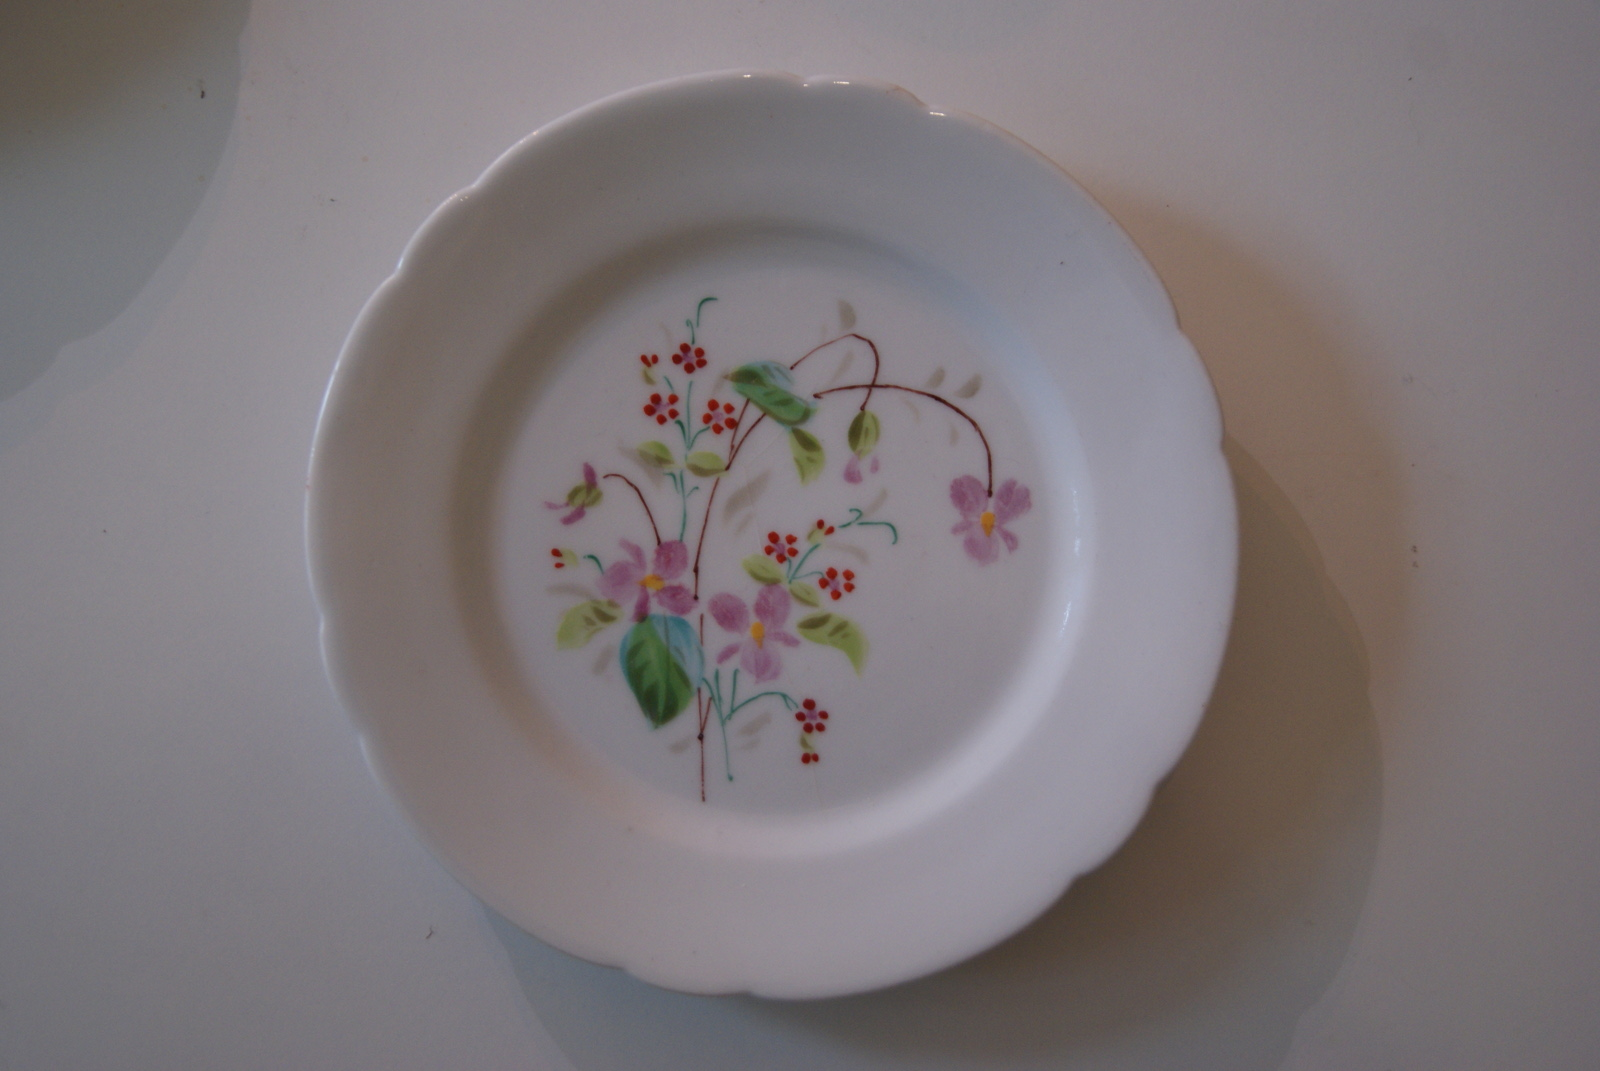 Fraureuth plate with flowers, pink and red flowers with leaves